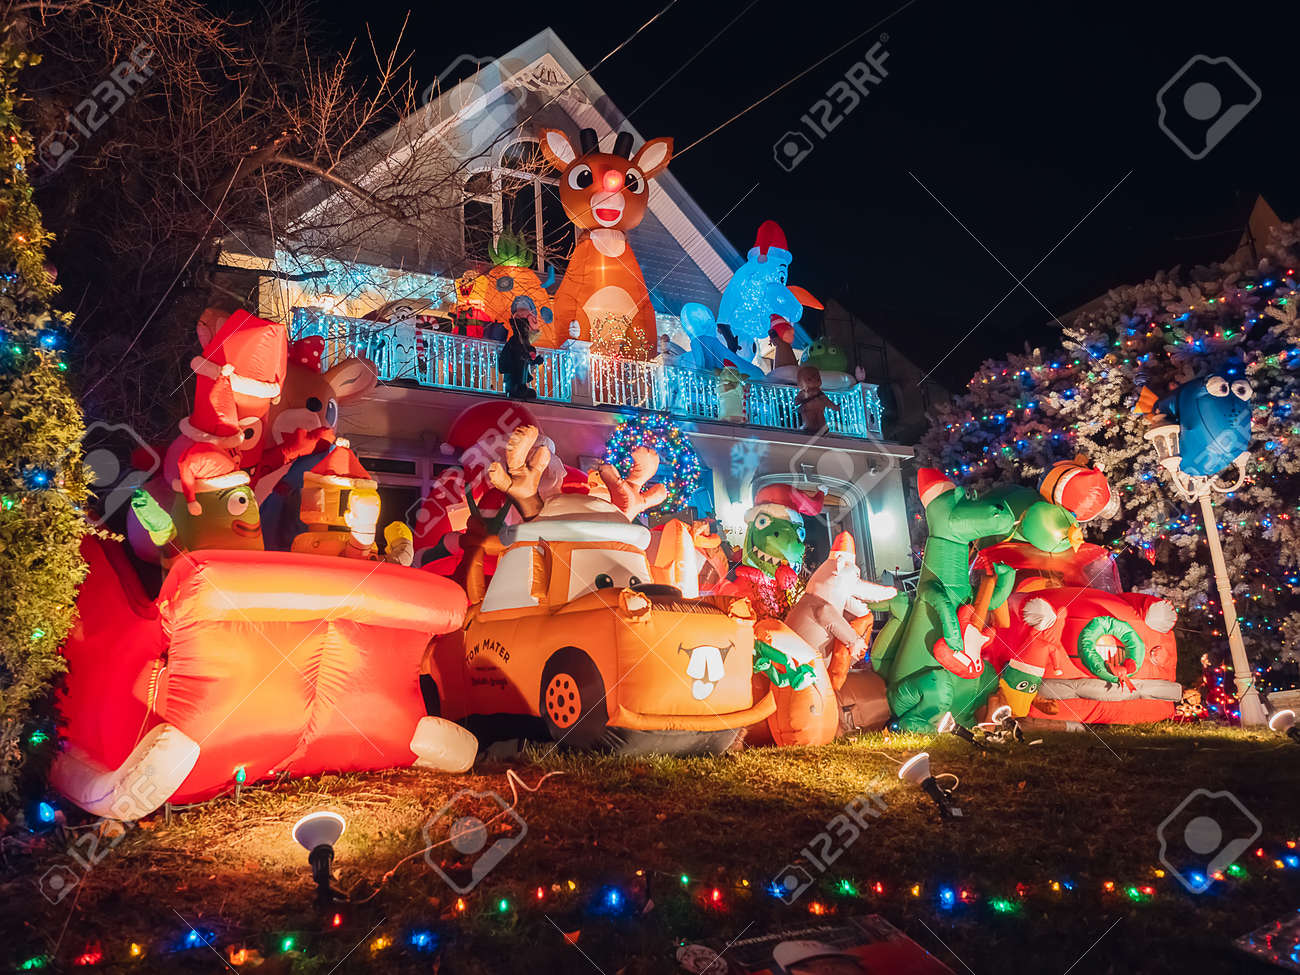 New York, USA, December 27, 2017. famous giant christmas decorations of houses in the neighborhood of dyker heights, in Brooklyn - 160493137